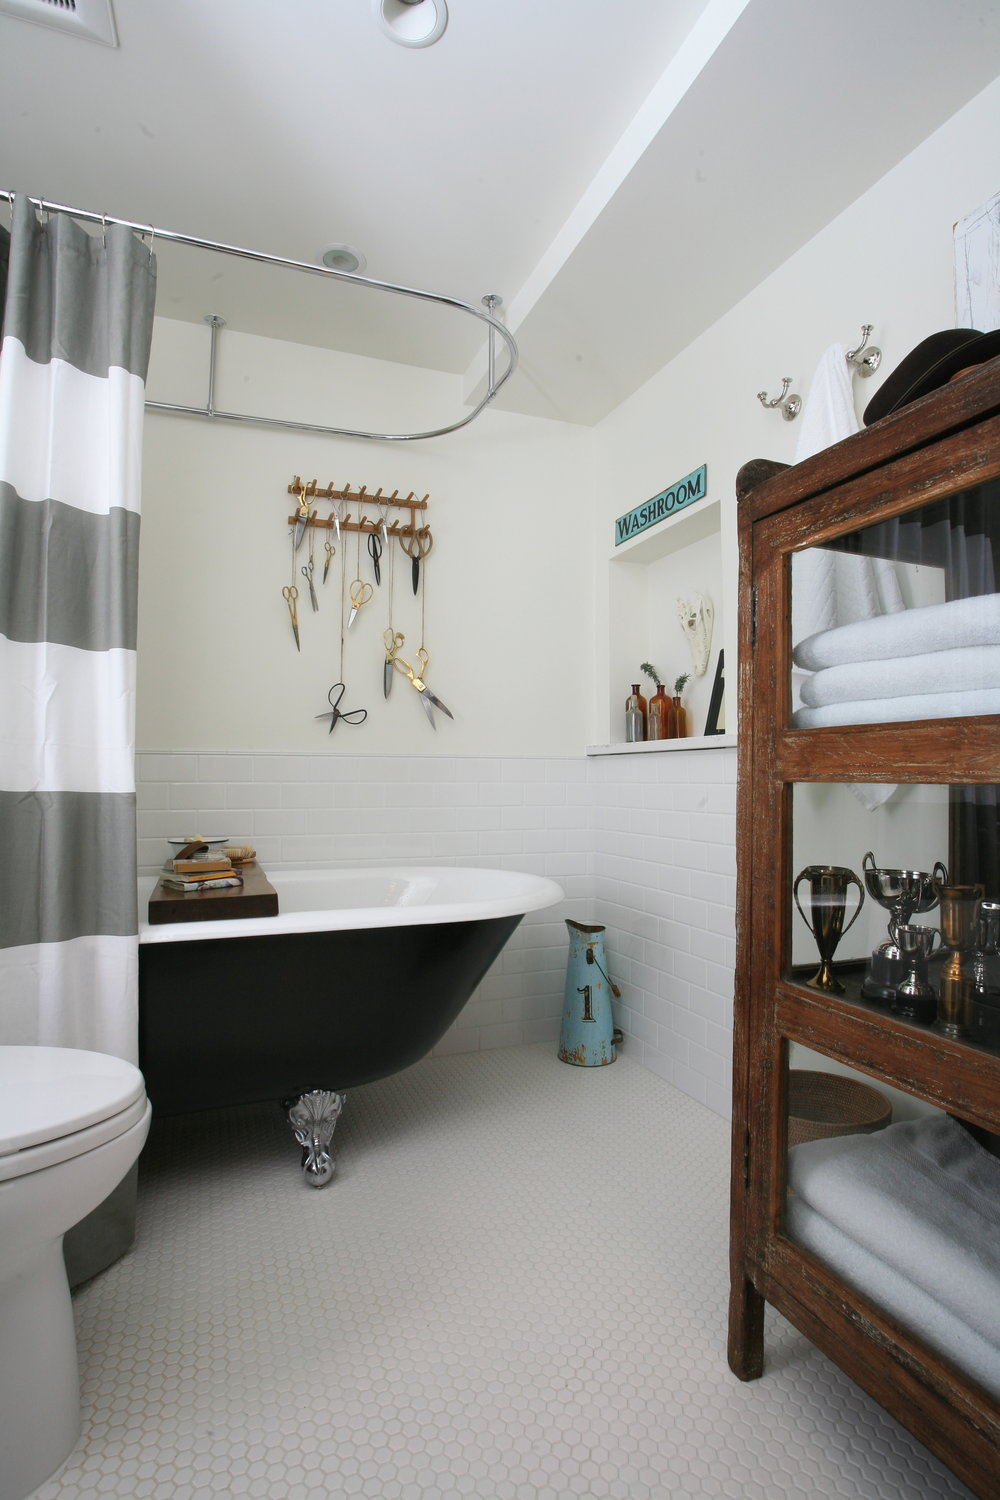 This white tiled bathroom features a black matte free standing claw foot tub with a grey and white shower curtain hanging around it. On the wall behind it is a decorative wooden hook with various scissors tied to it with ribbon and located in the foreground there is a wood and glass cabinet that houses towels and trophies.